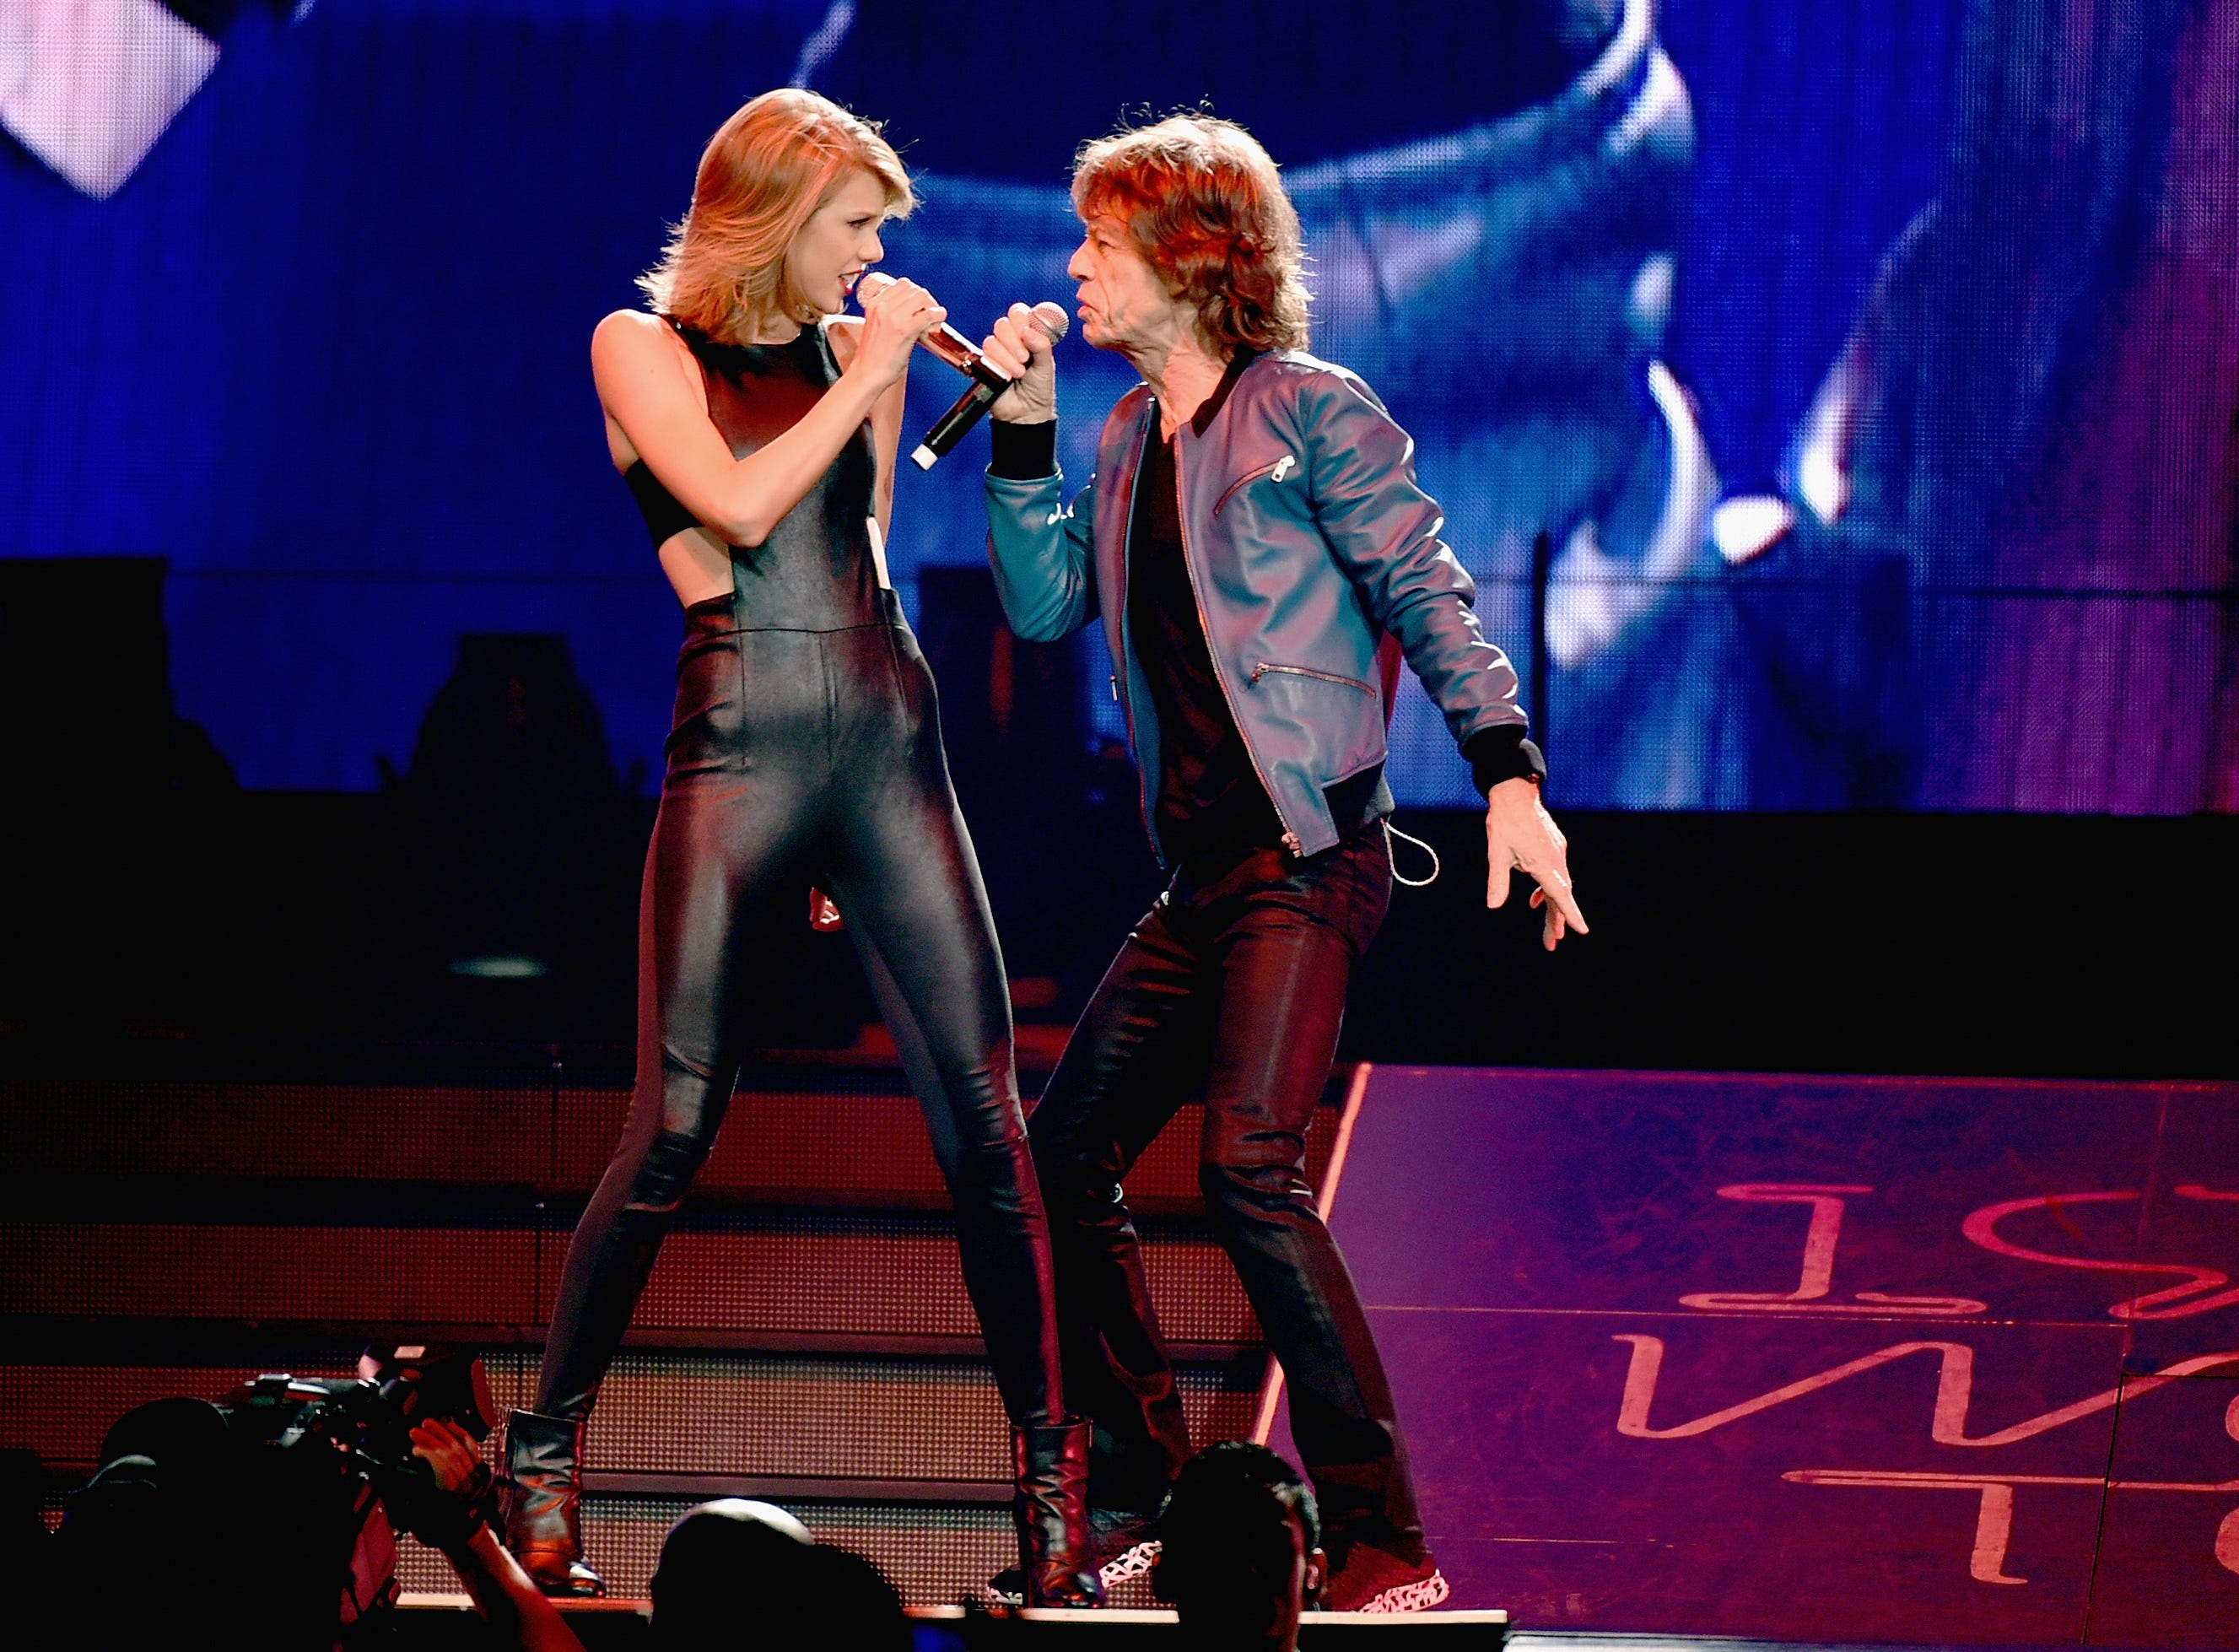 Singer/songwriter Taylor Swift performs onstage with Mick Jagger  during The 1989 World Tour live in Nashville at Bridgestone Arena at Bridgestone Arena on September 26, 2015 in Nashville, Tennessee. *** Local Caption *** Taylor Swift ORG XMIT: 580072265 [Via MerlinFTP Drop]